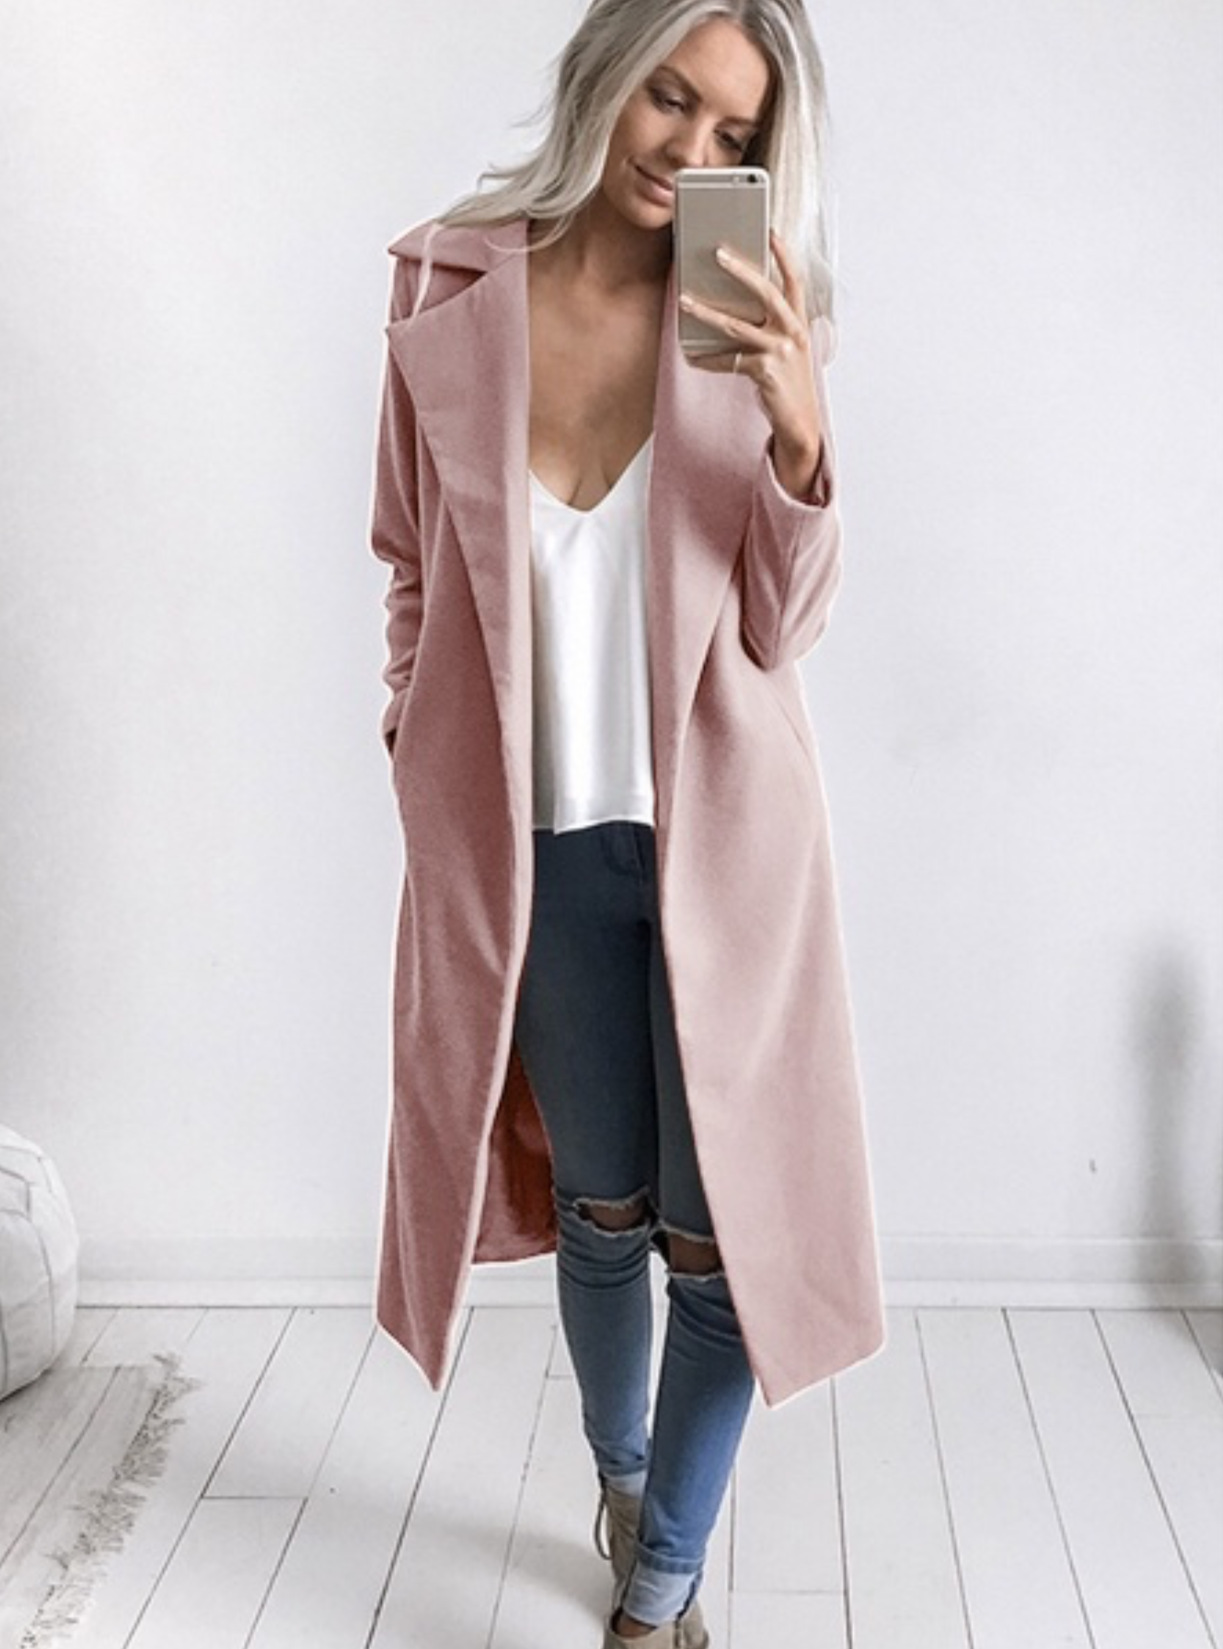 Oasis Pink Collarless Slim Fit Jacket Trench Overcoat Soft Smart Coat 6 to 14